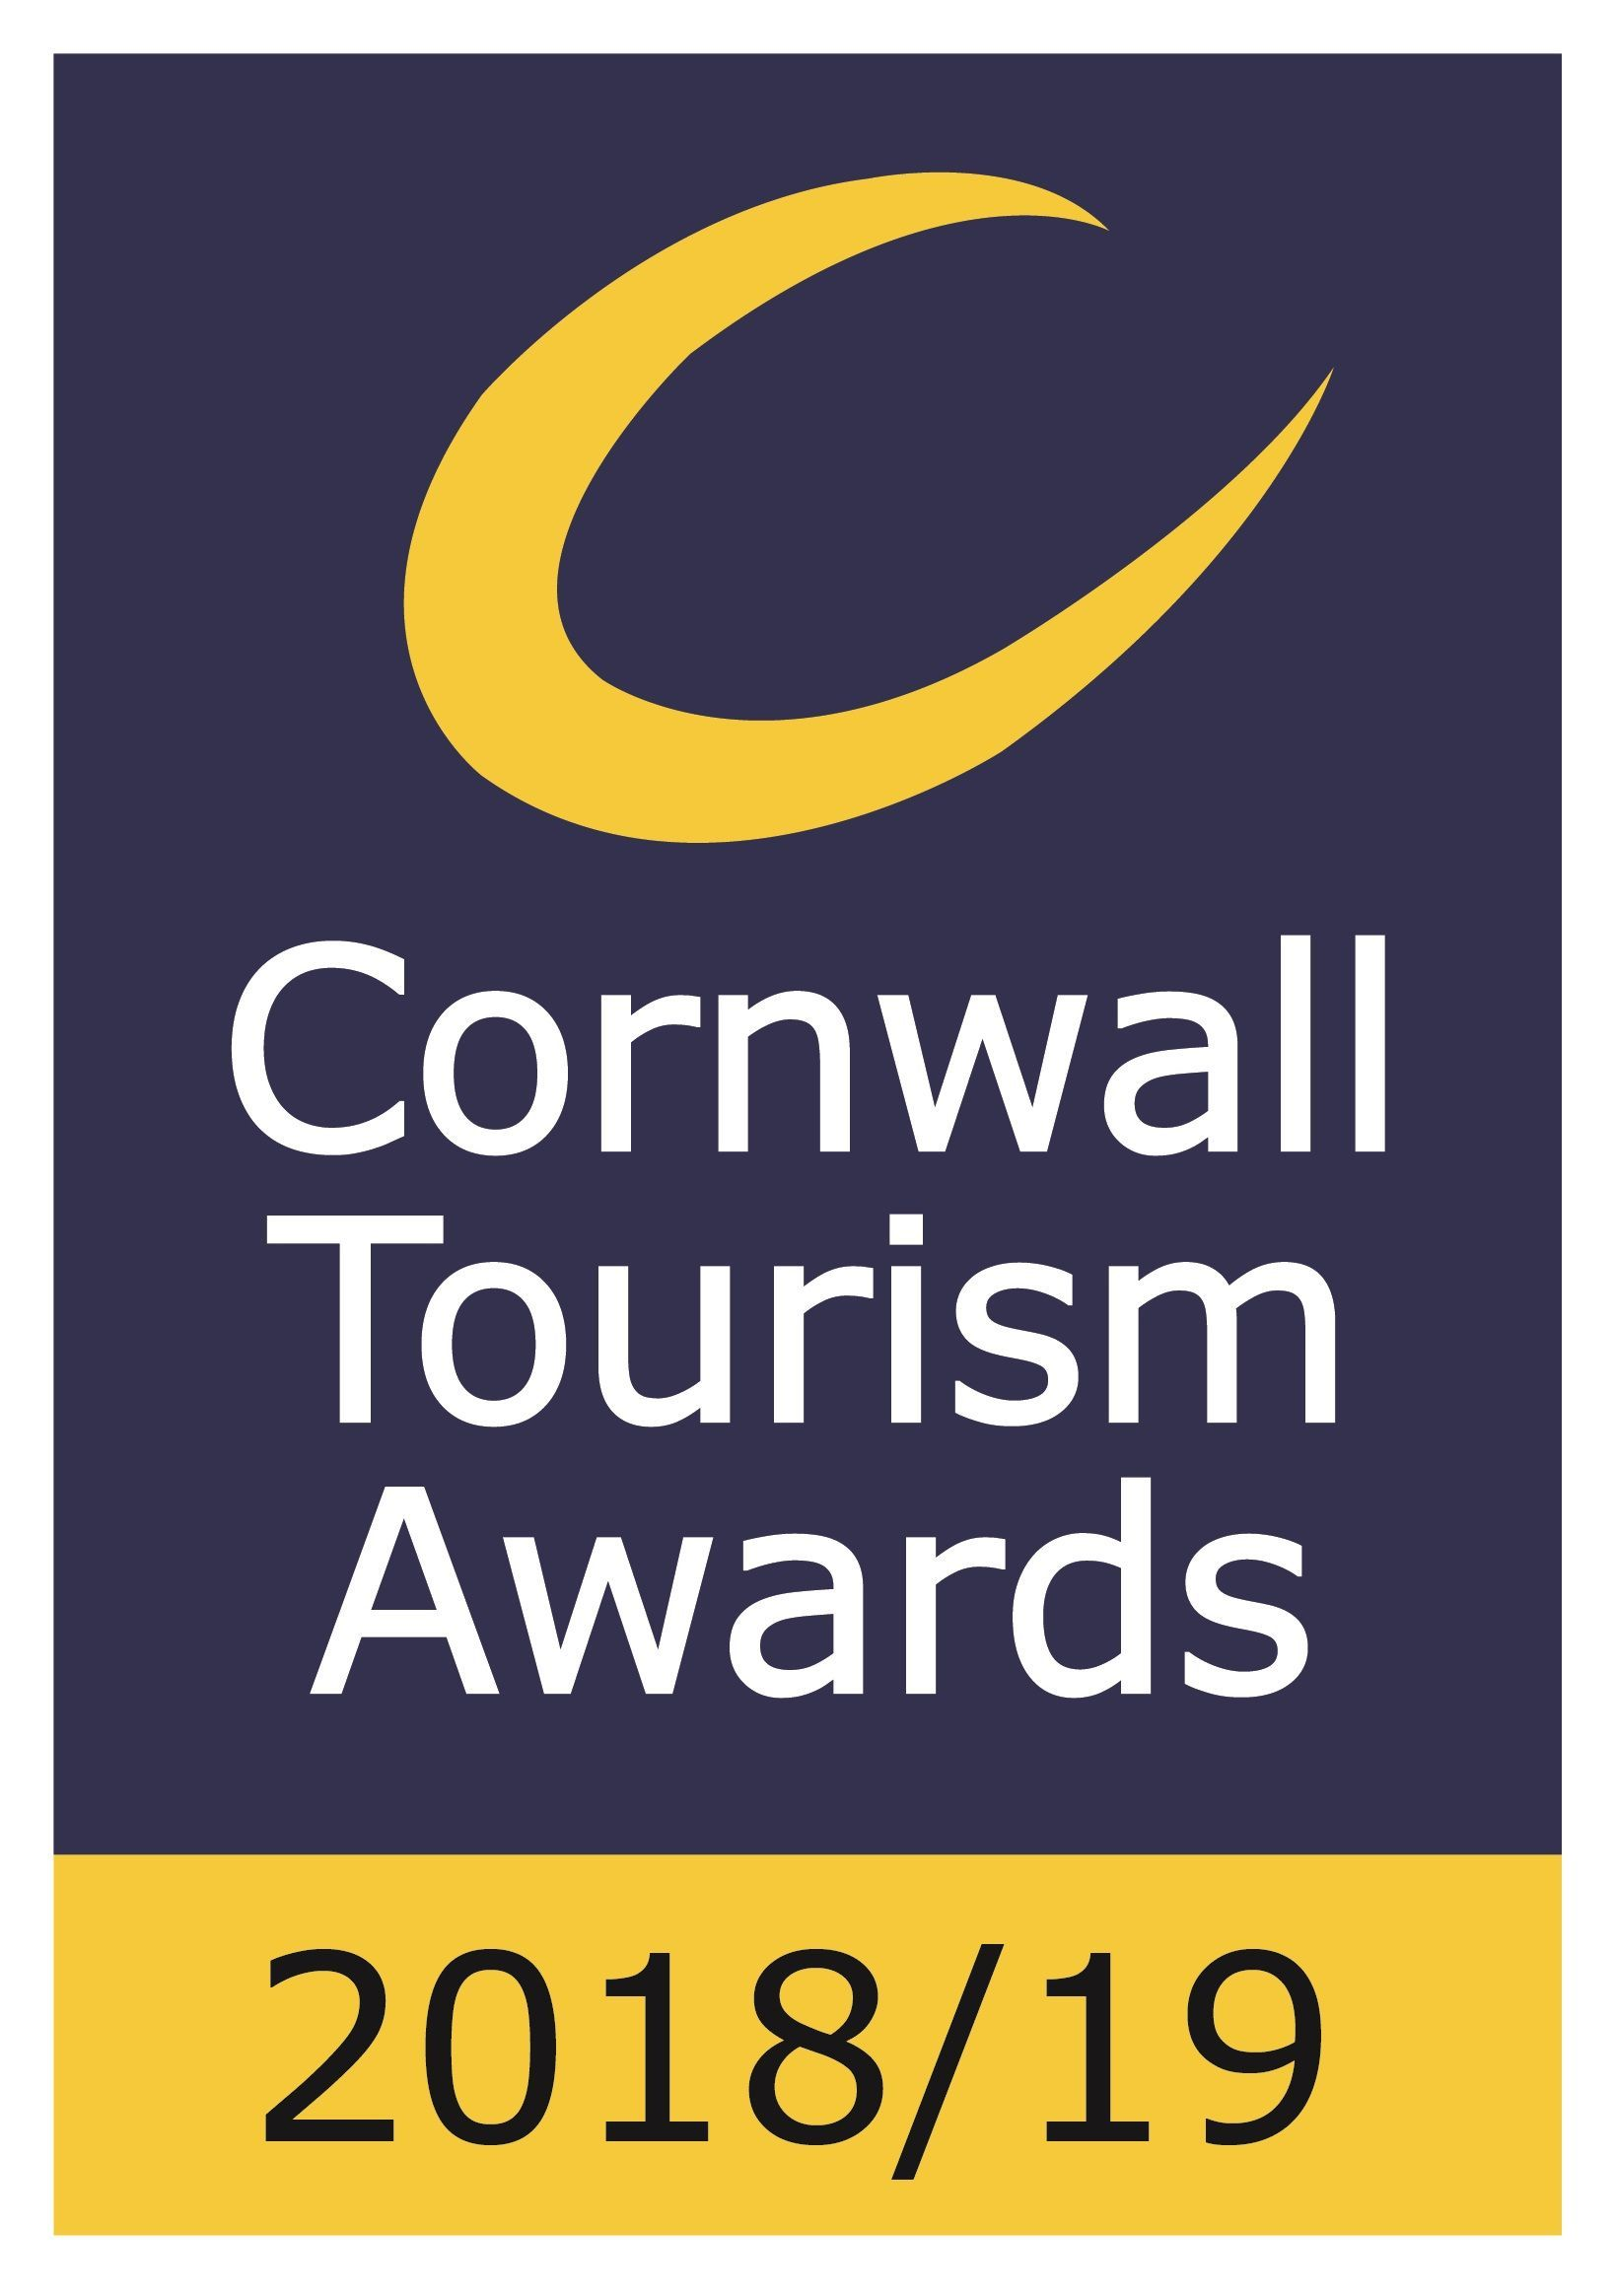 Cornwall Tourism Awards 2018/19 are open for entries